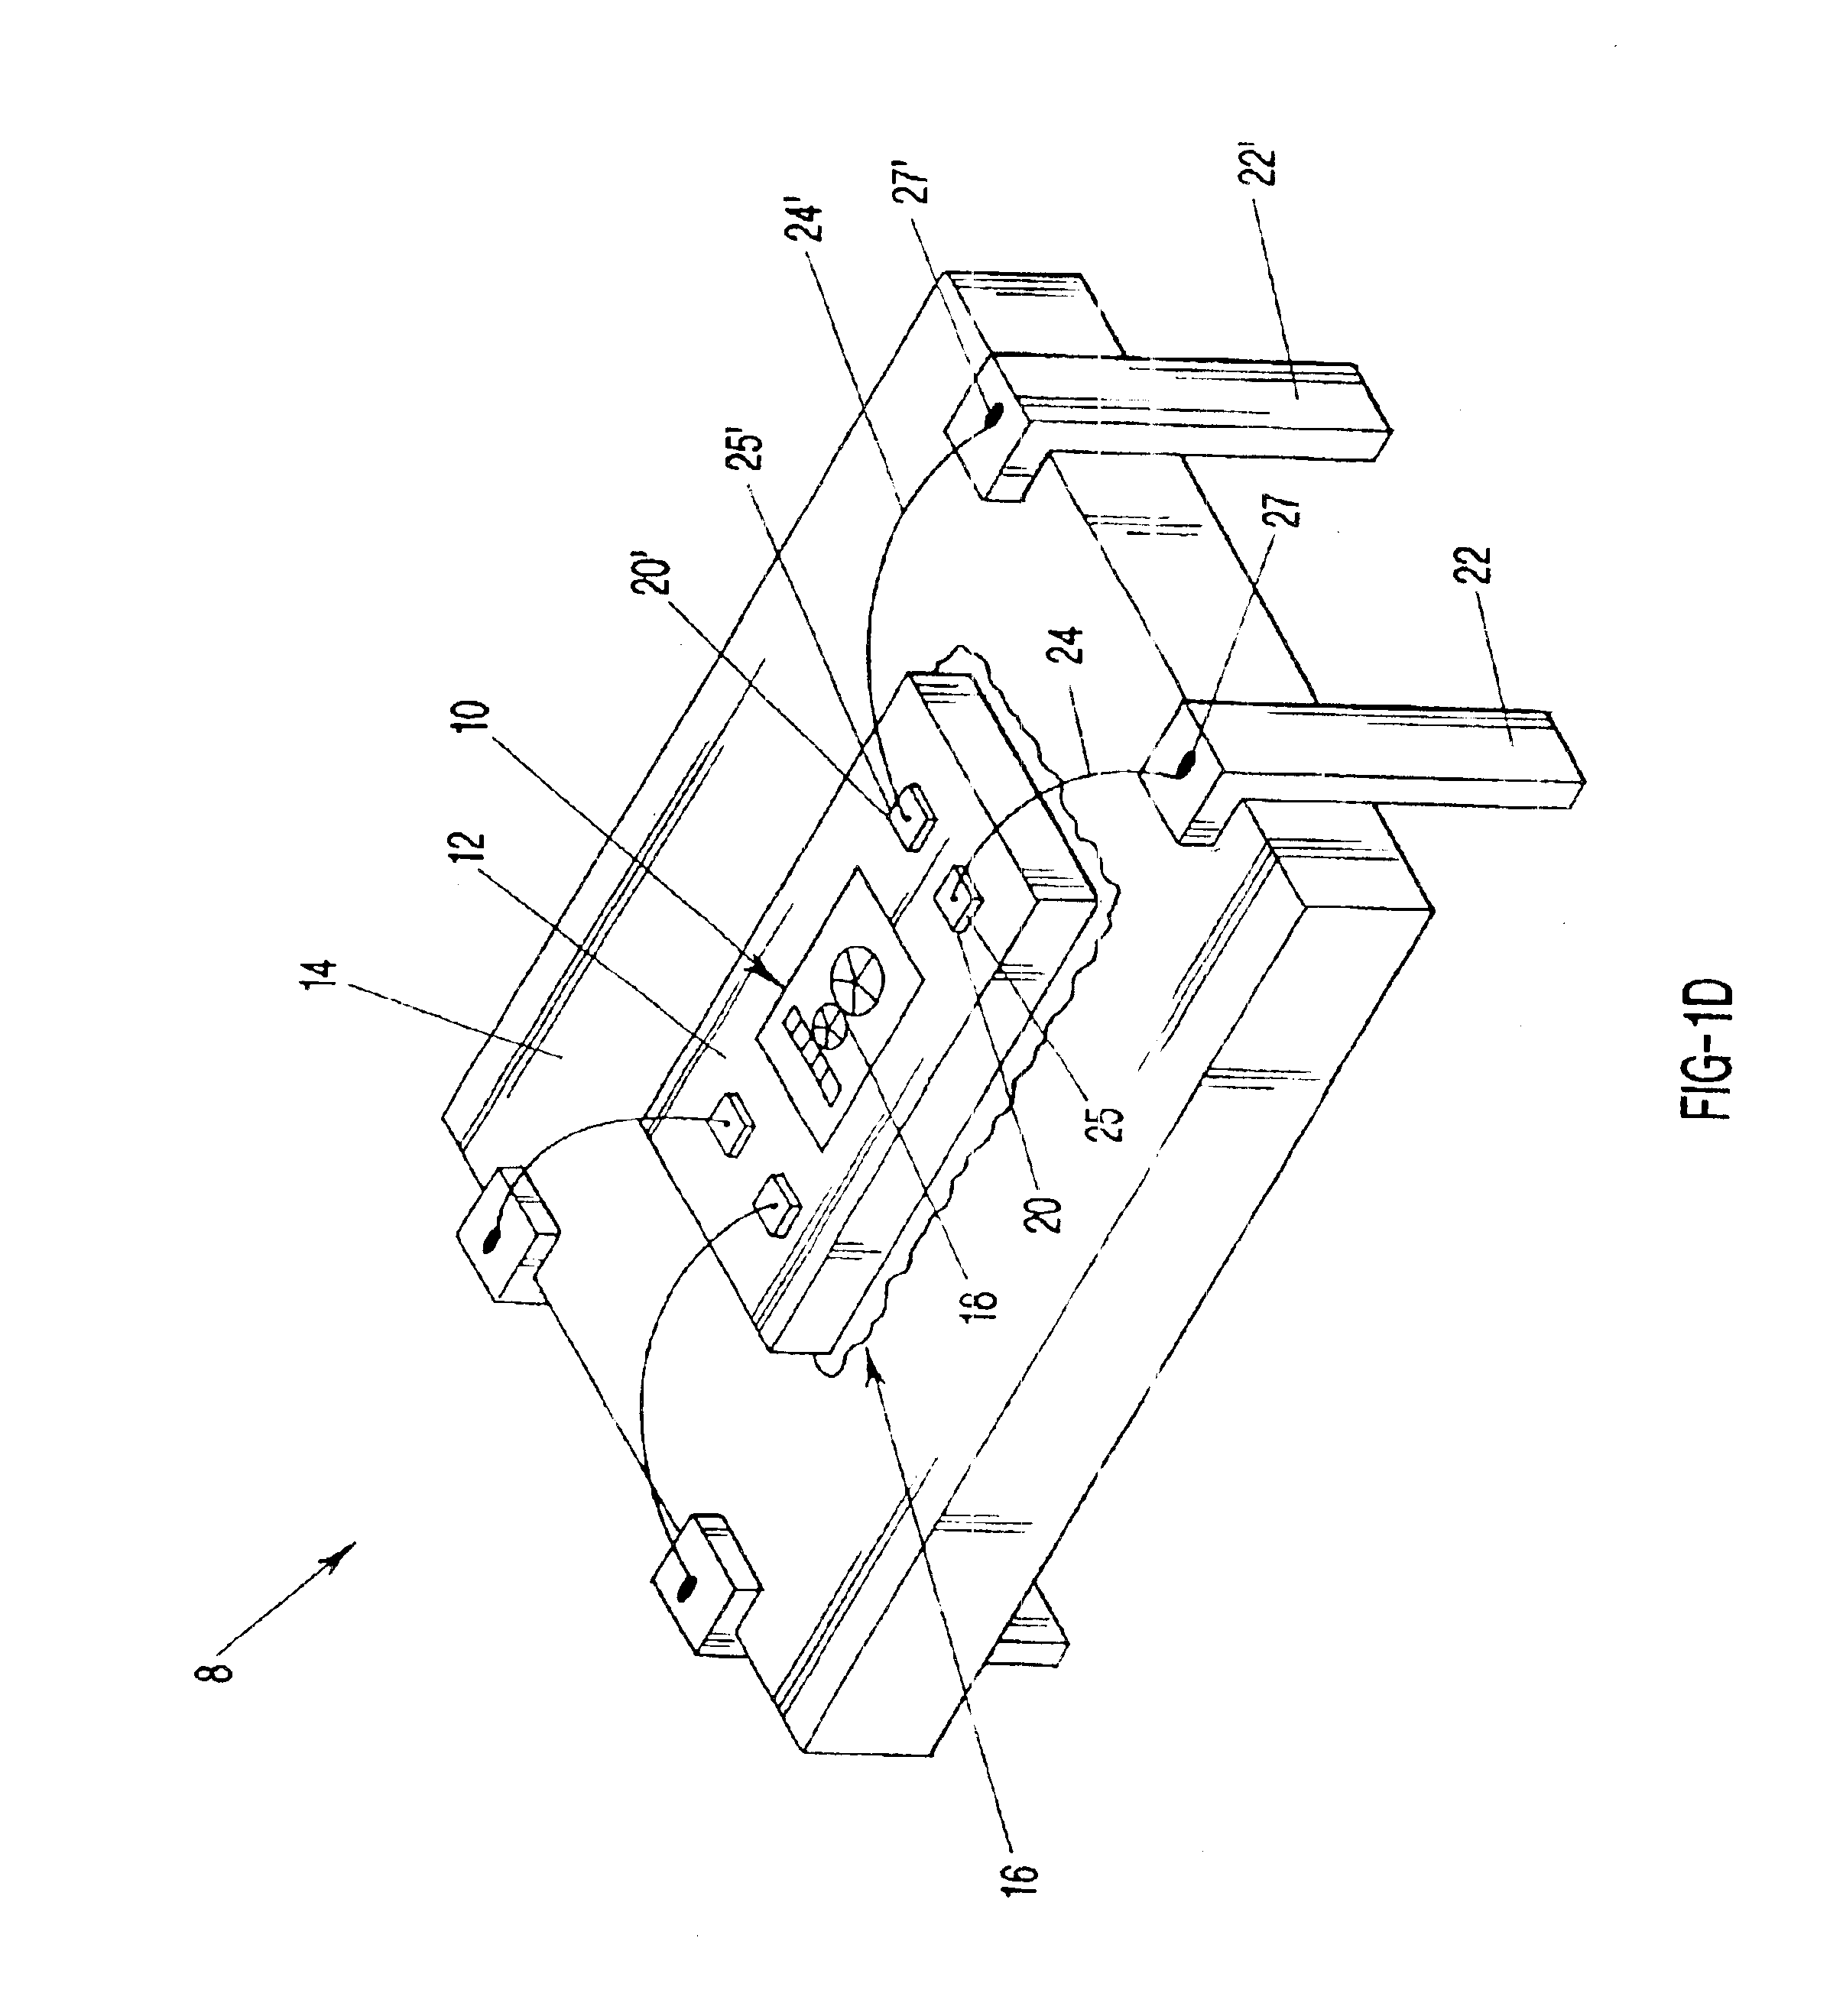 patent us6858943 - release resistant electrical interconnections for mems devices